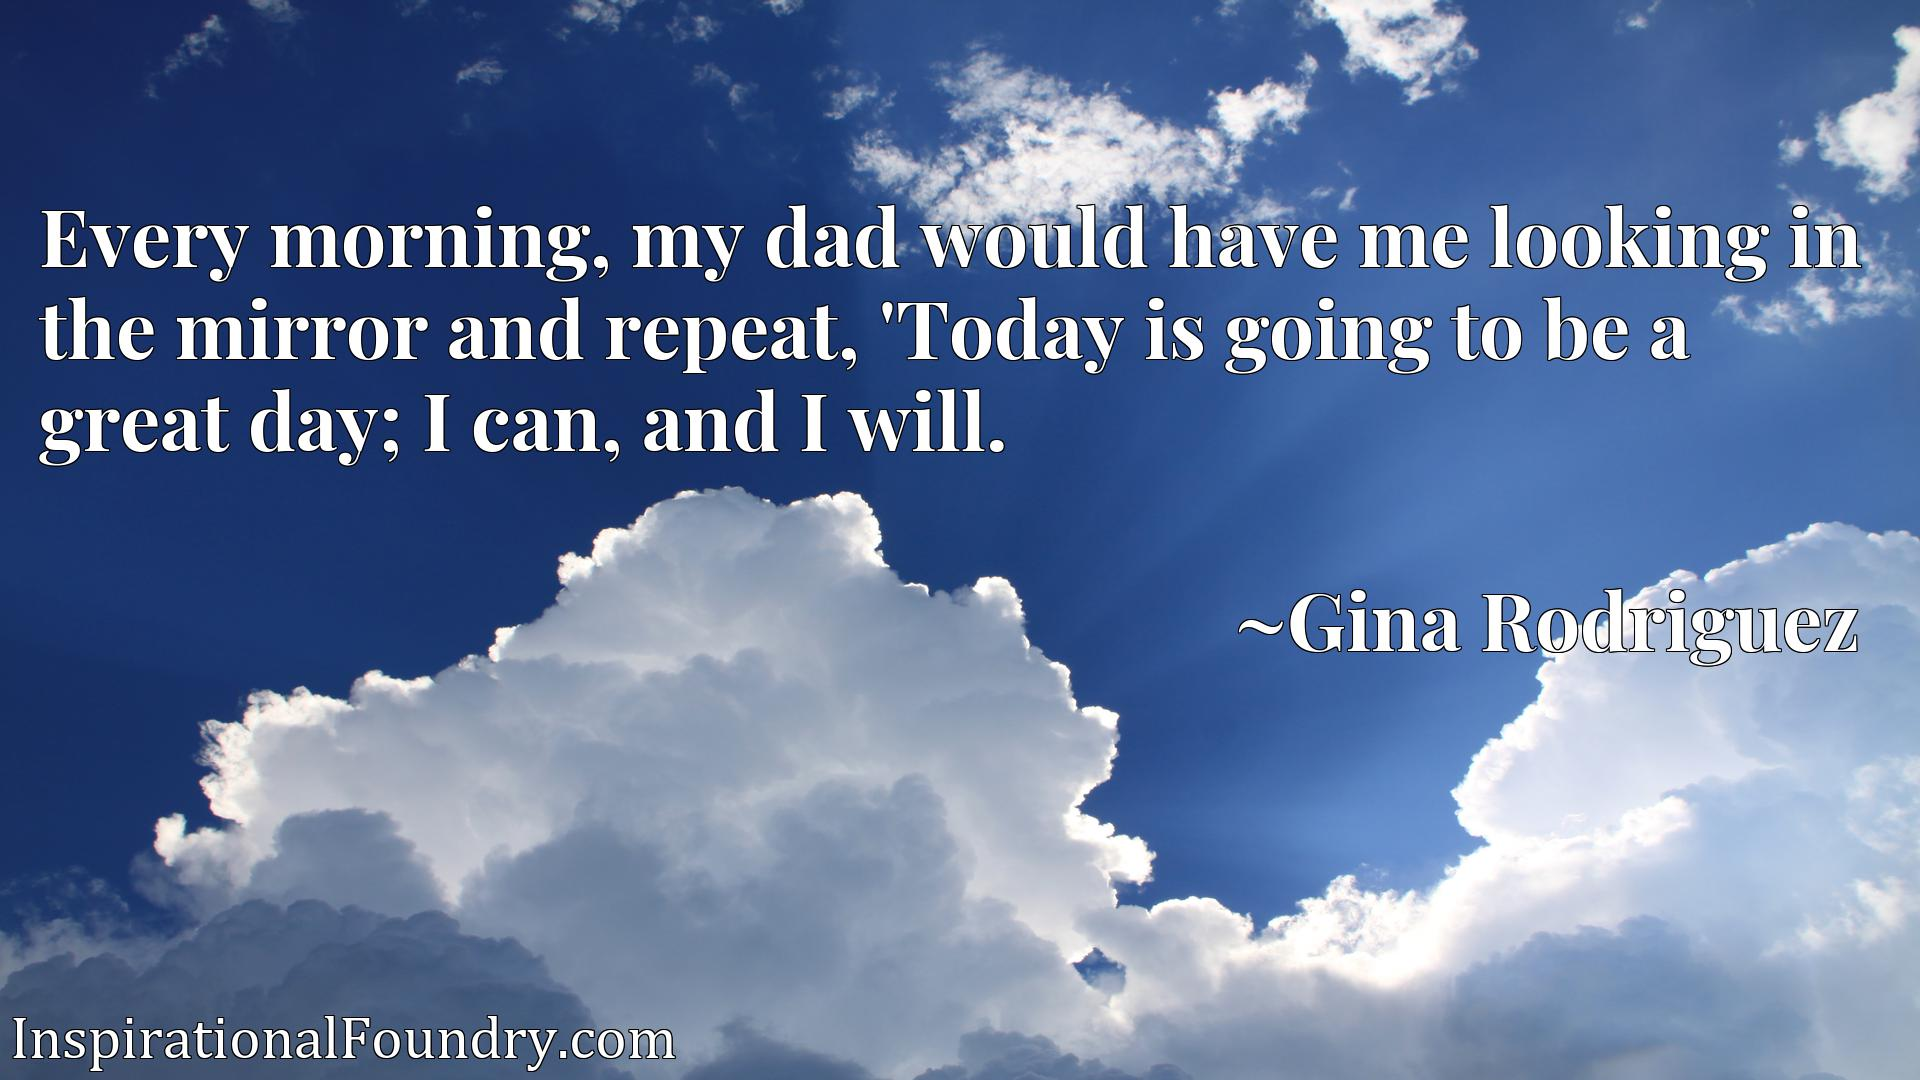 Every morning, my dad would have me looking in the mirror and repeat, 'Today is going to be a great day; I can, and I will.